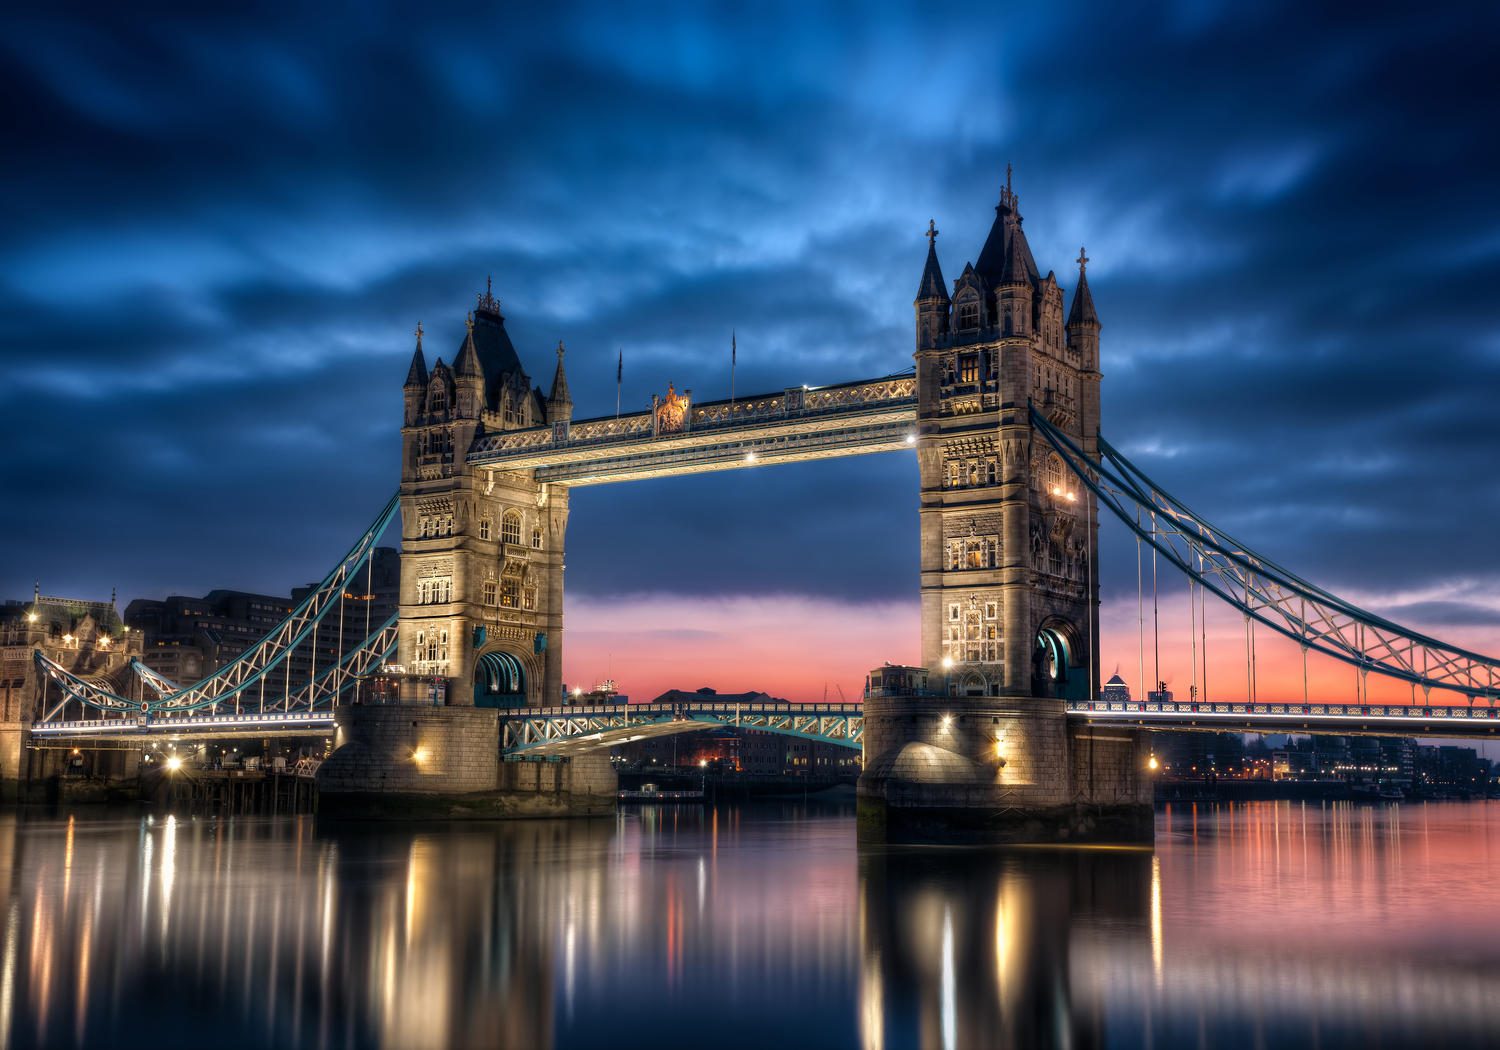 wandmotiv24 fototapete towerbridge london vliestapete wandtapete m0267 bauwerke fototapeten. Black Bedroom Furniture Sets. Home Design Ideas